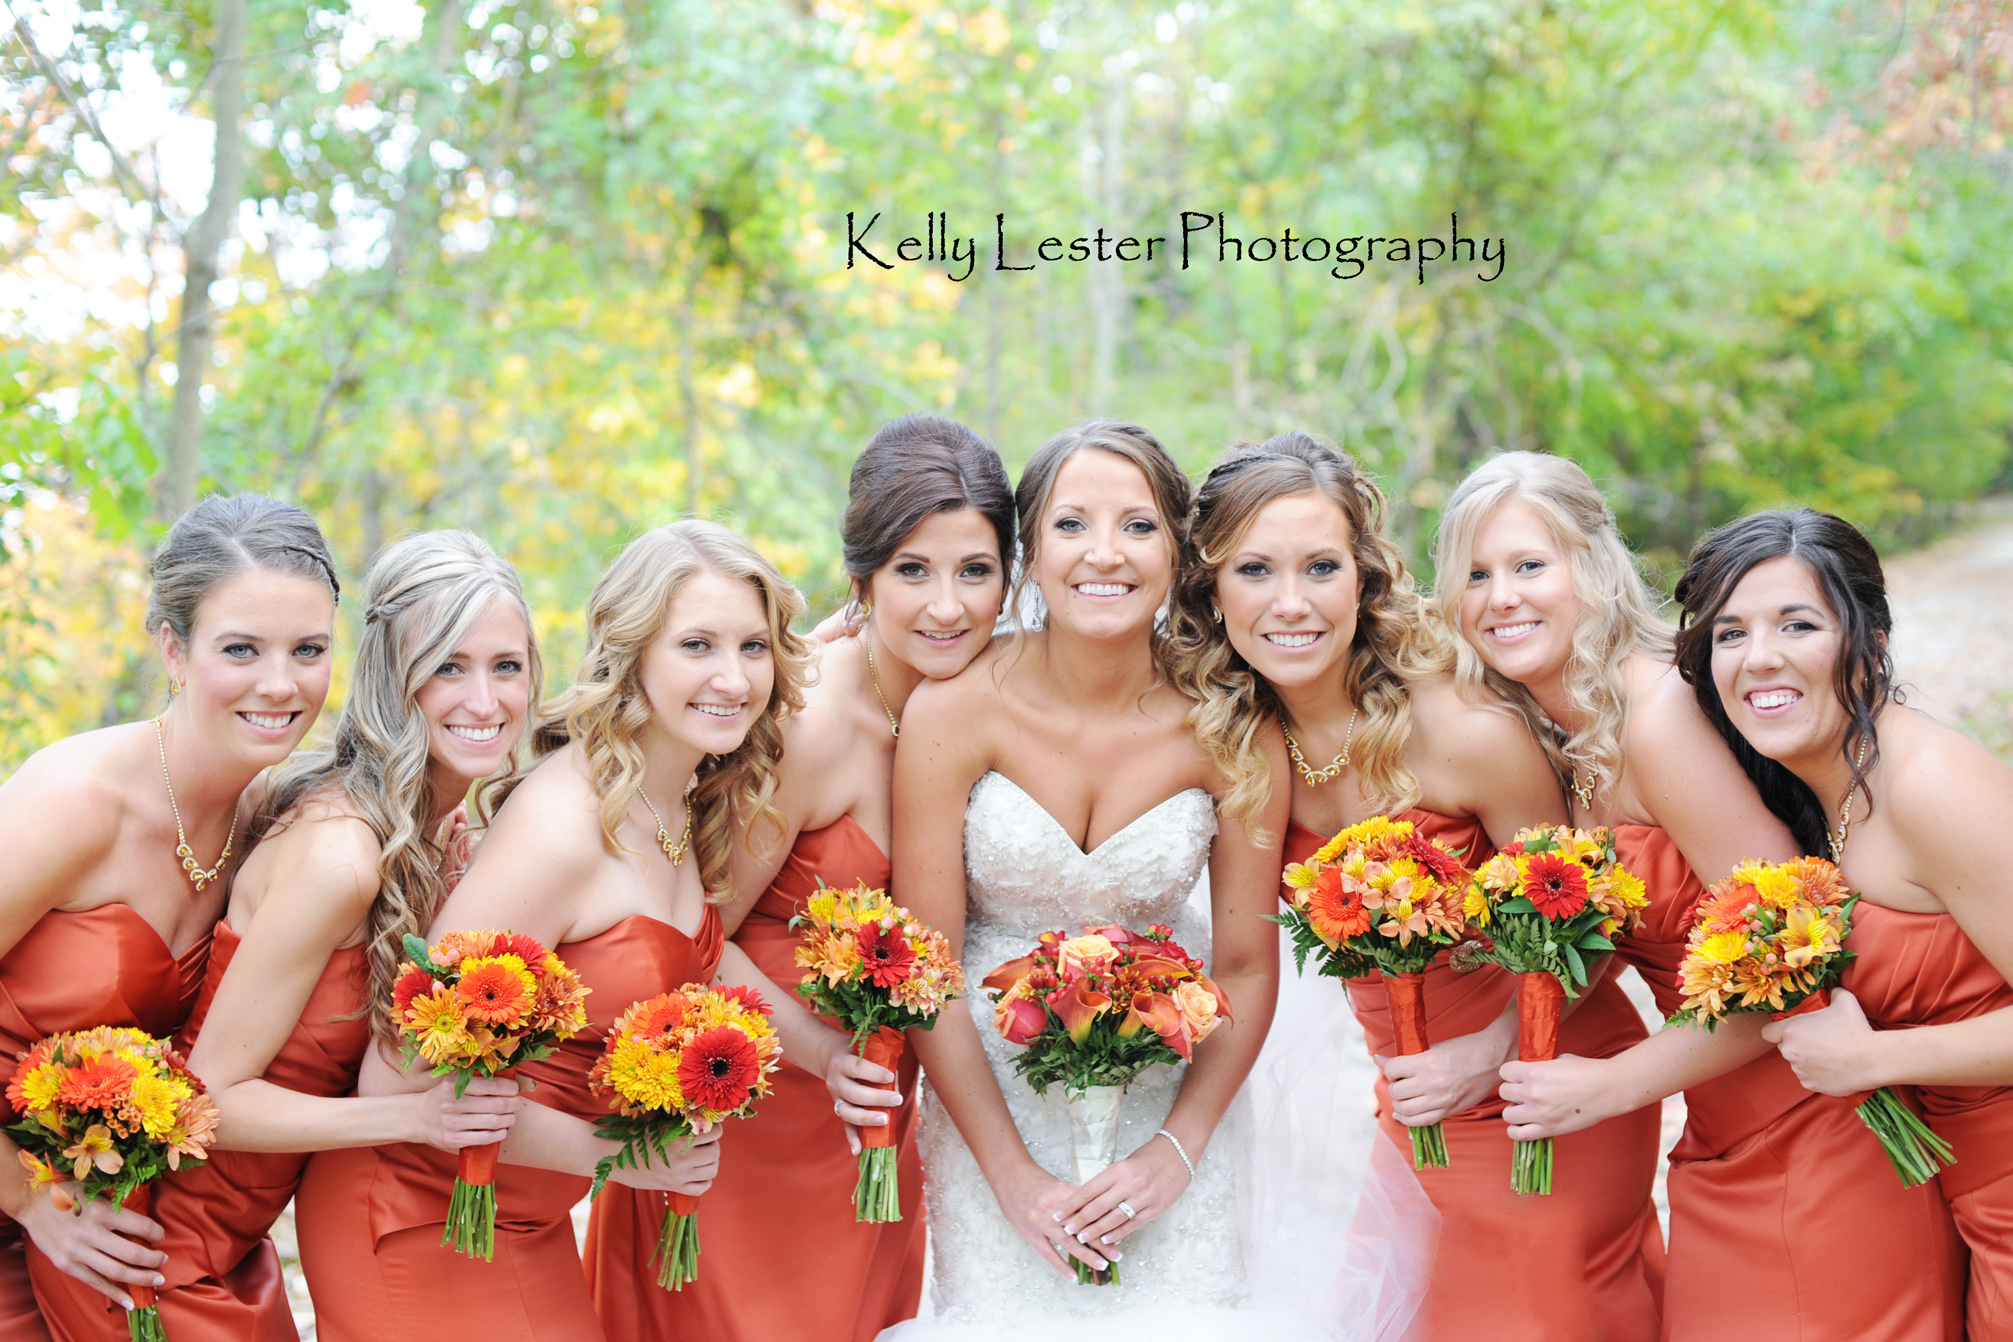 Kelly Lester Photography